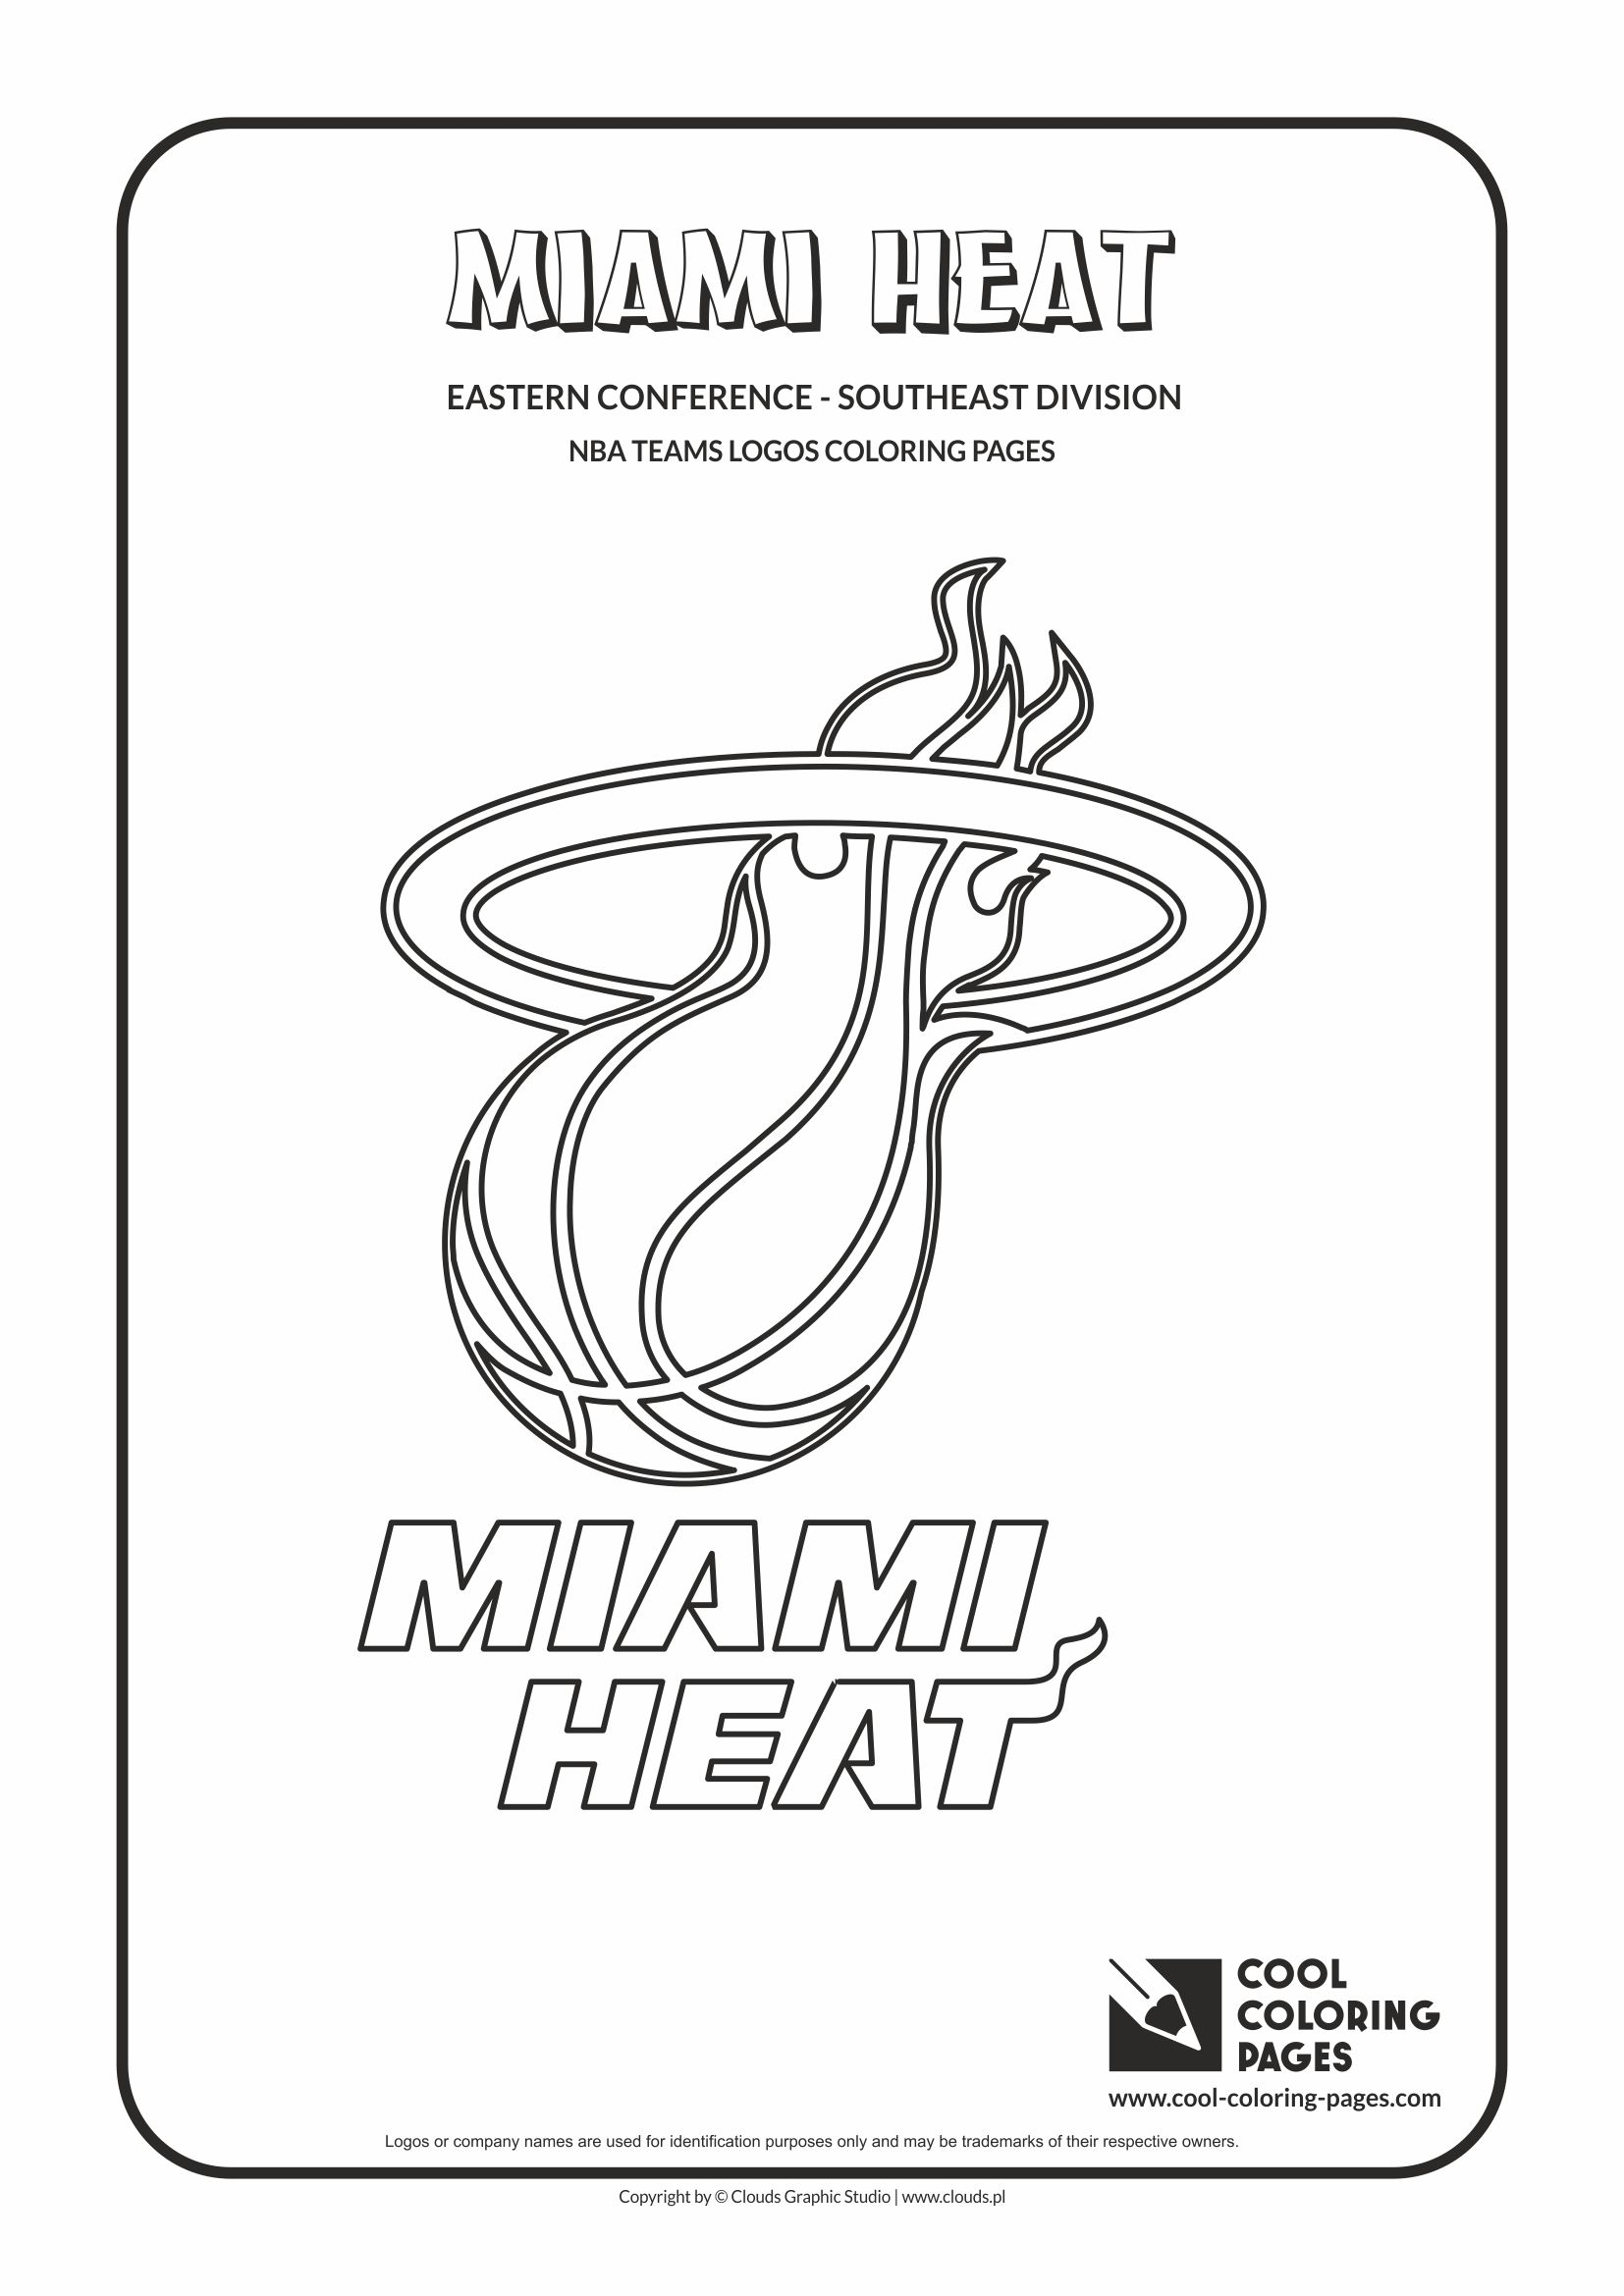 Co co coloring pages of a cowgirl - Cool Coloring Pages Nba Teams Logos Miami Heat